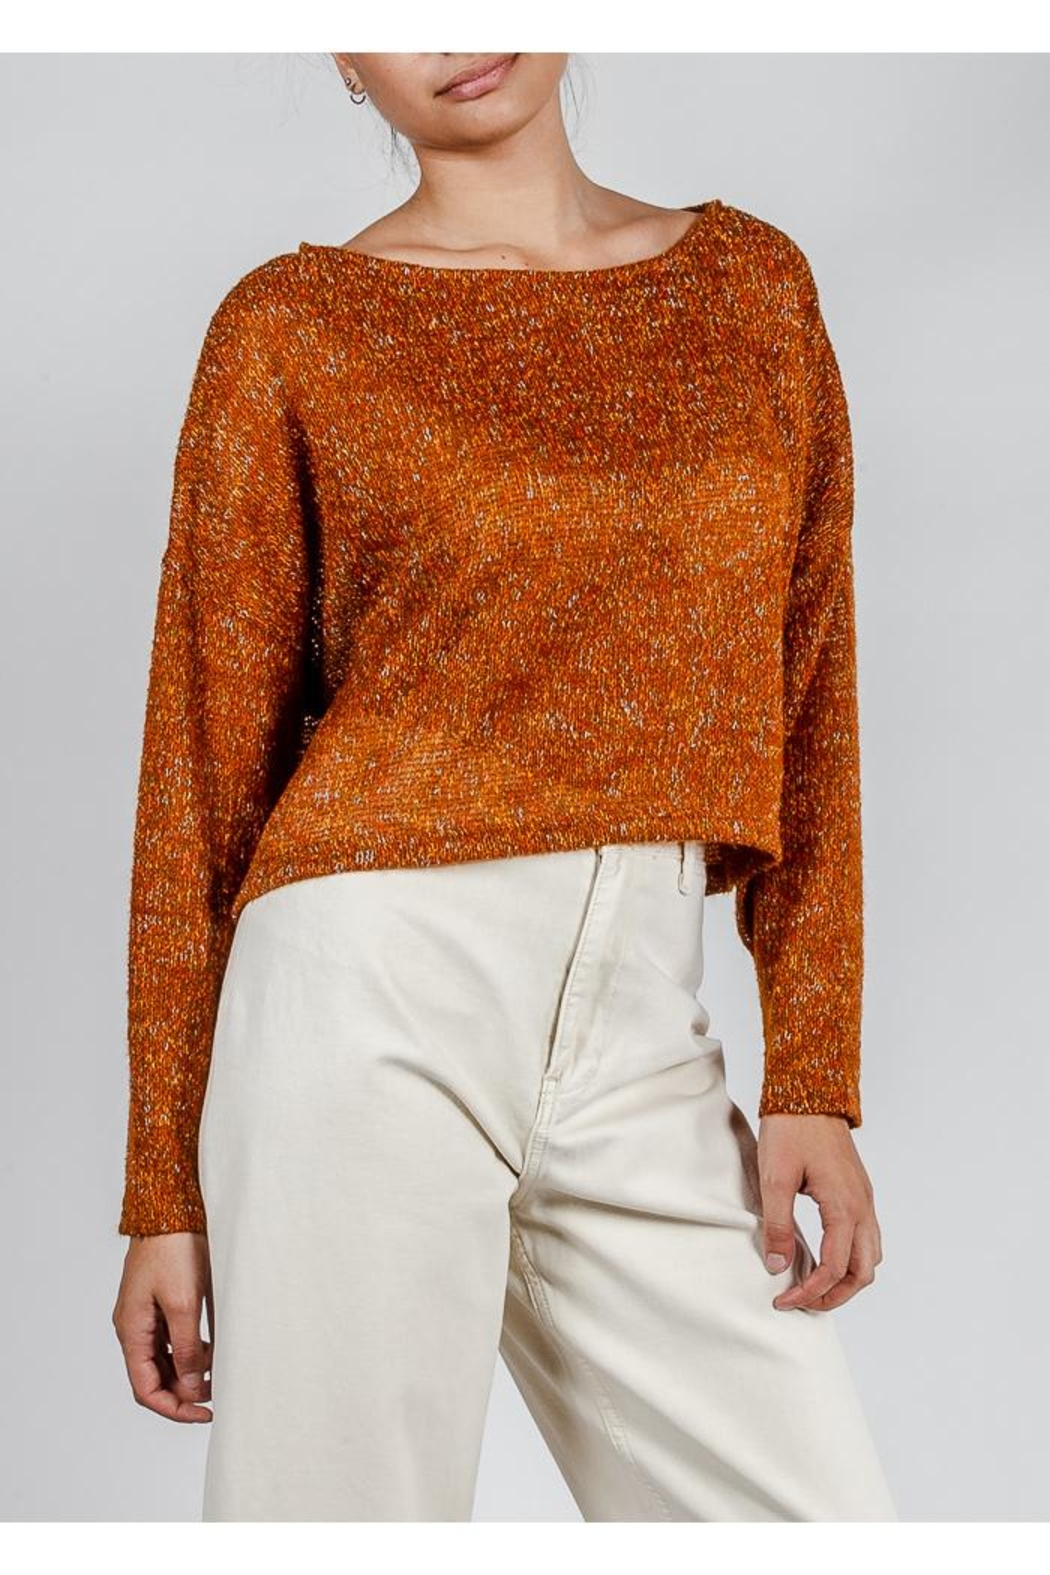 Lumiere Coloful Knit Sweater - Side Cropped Image